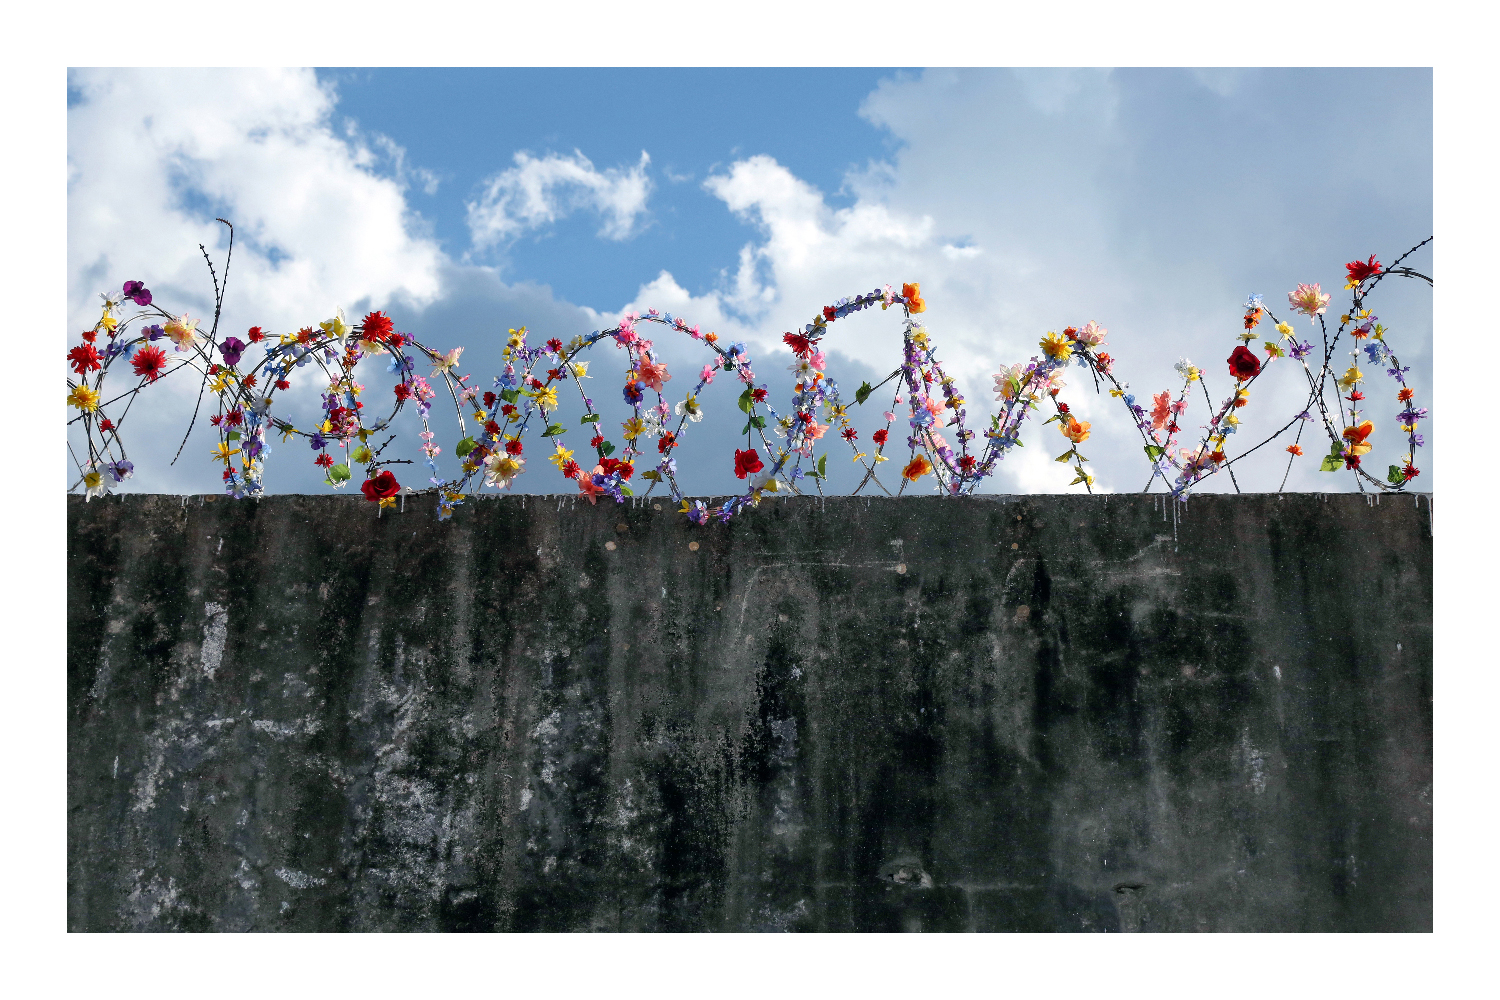 Imagine a world without borders 30x45 inch (websize) .jpg